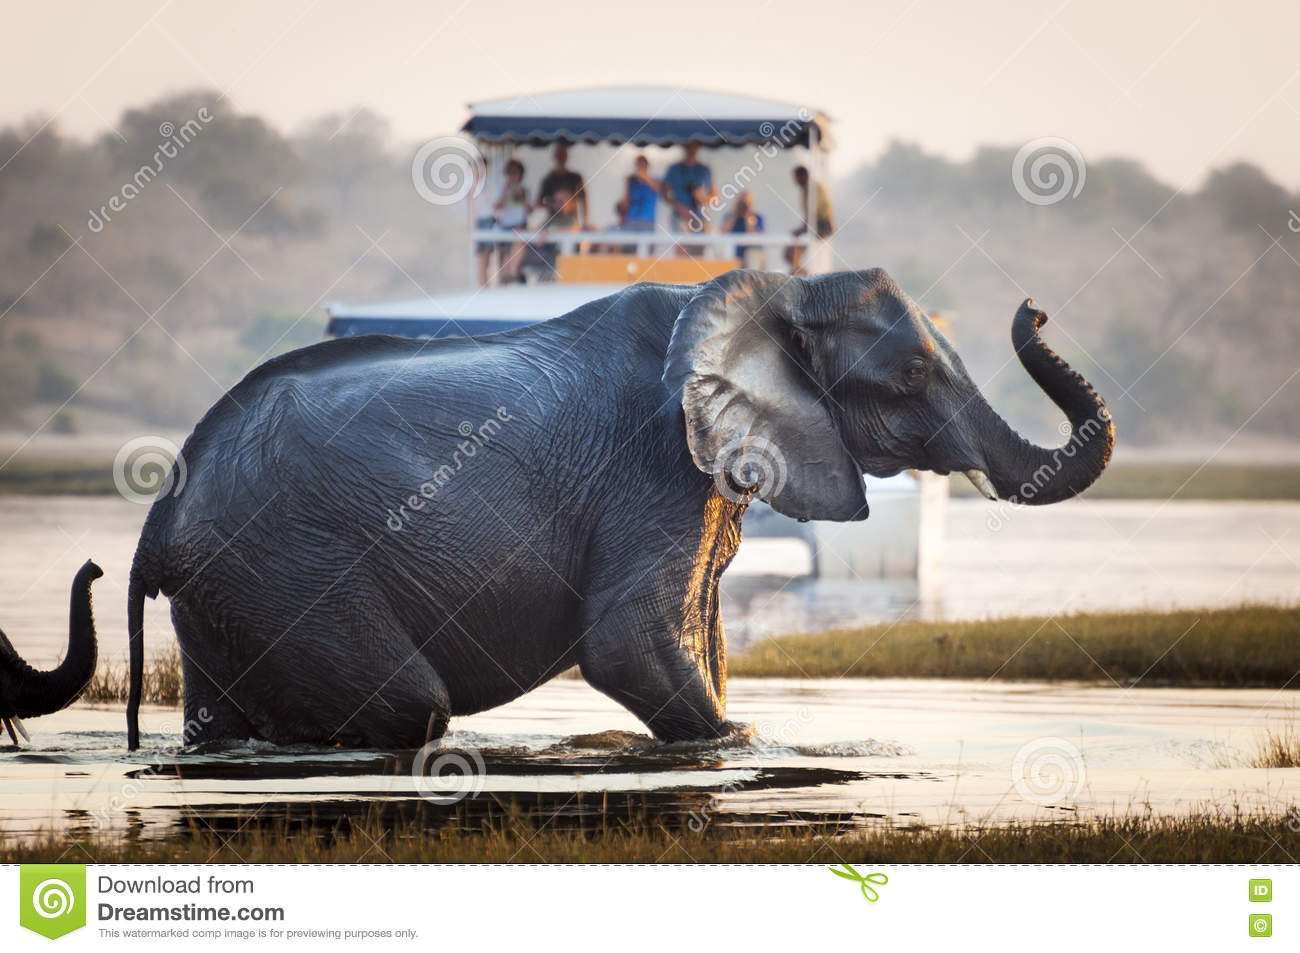 Tourist watching an elephant crossing a river in the Chobe National Park in Botswana, Africa